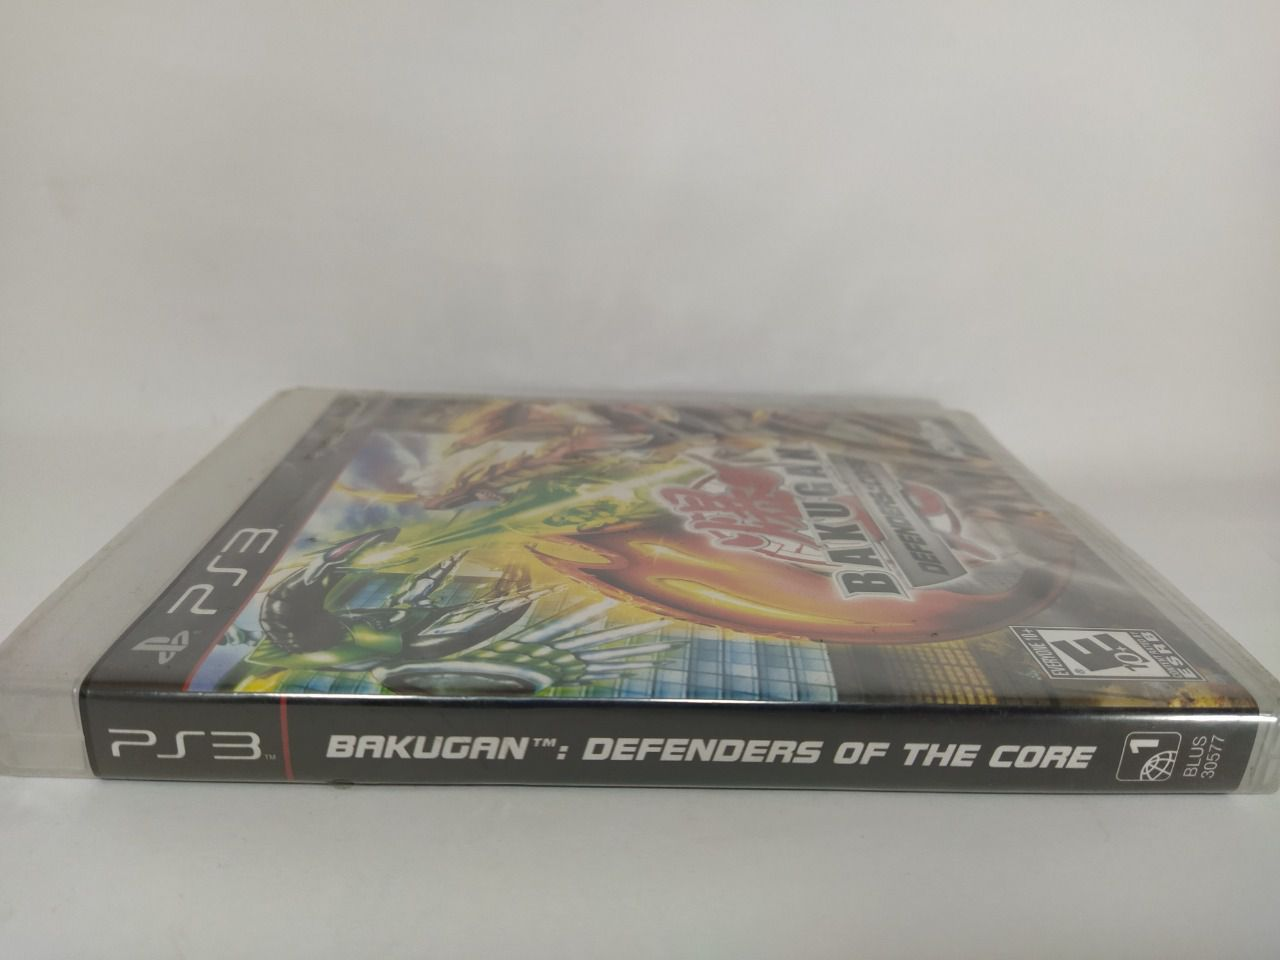 jogo Bakugan Defenders of the Core Ps3 Novo